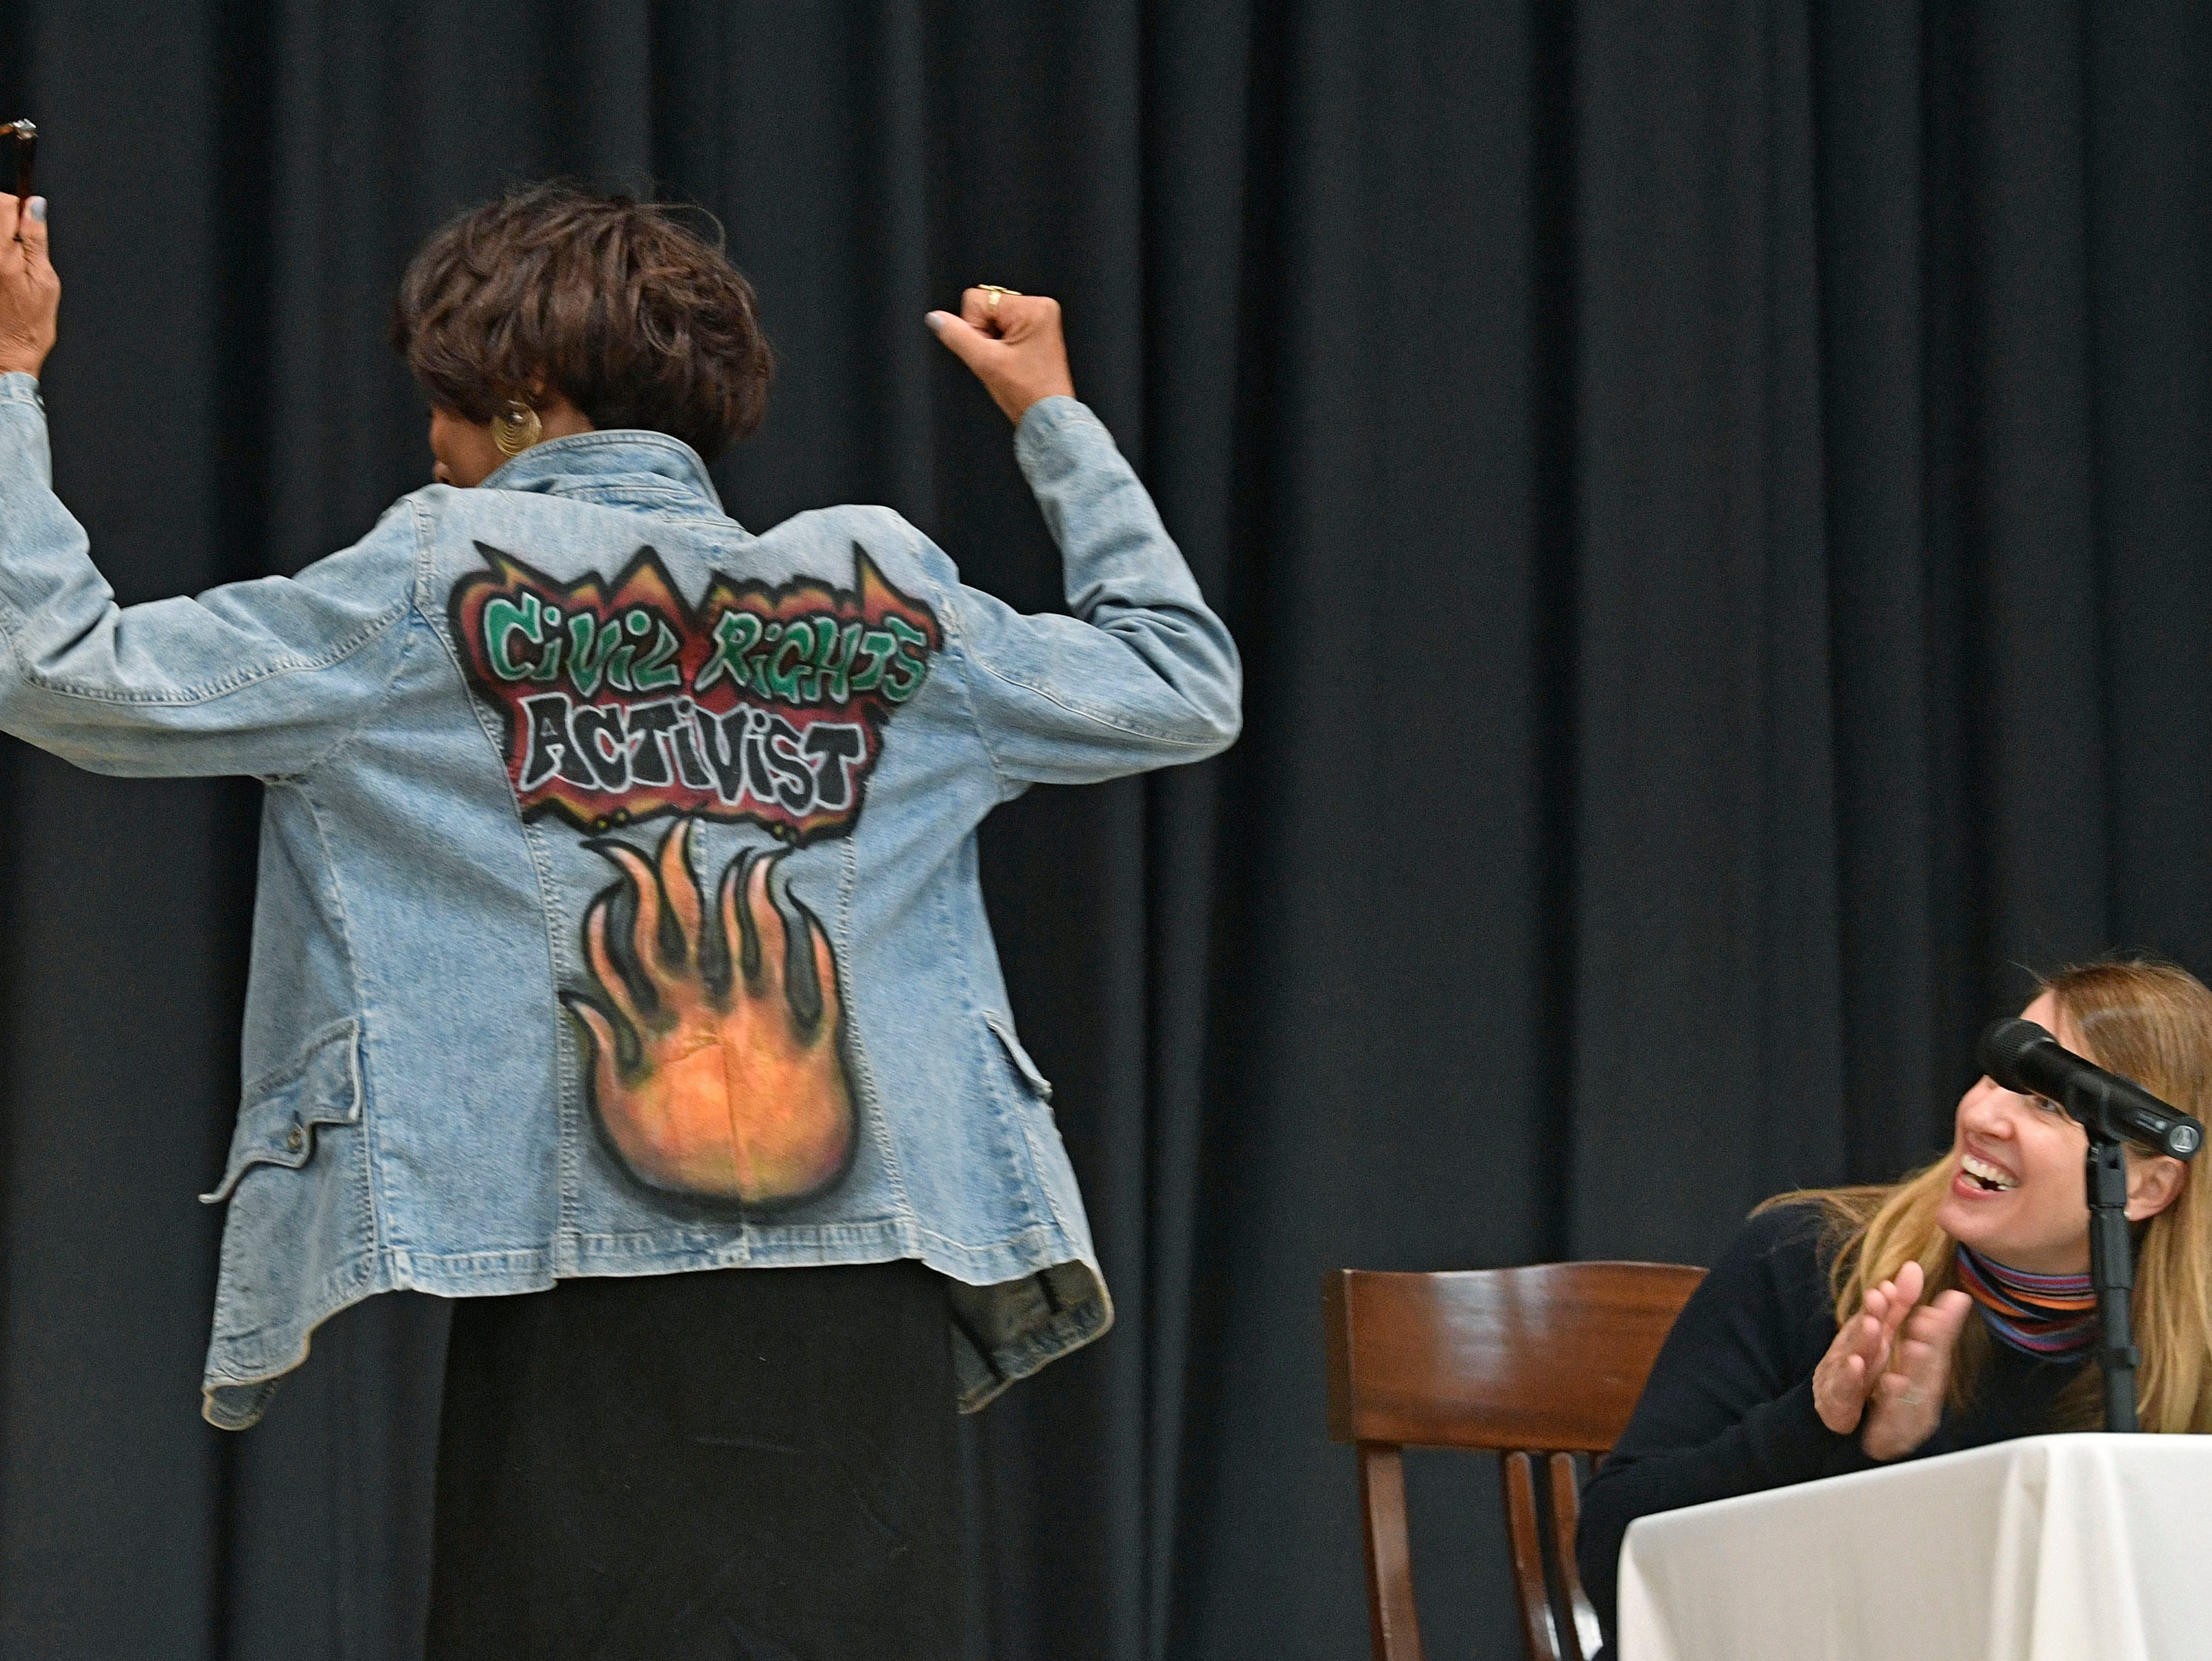 """Gloria McKissack displays a jacket that announces she was a Civil Rights Activist. McKissack was part of the lunch counter movement during the 1960's in Nashville.  A significant part of Frist Art Museum's """"We Shall Overcome"""" photo exhibit will be presented at the Robert Churchwell Museum Magnet School beginning November 30. To celebrate its opening, the school hosted an assembly that featured remarks by the principal and a conversation with several participants, including Lajuanda Street Harley, Kwame Lillard, Rip Patton, and Gloria McKissack.  Friday Nov. 30, 2018, in Nashville, Tenn."""